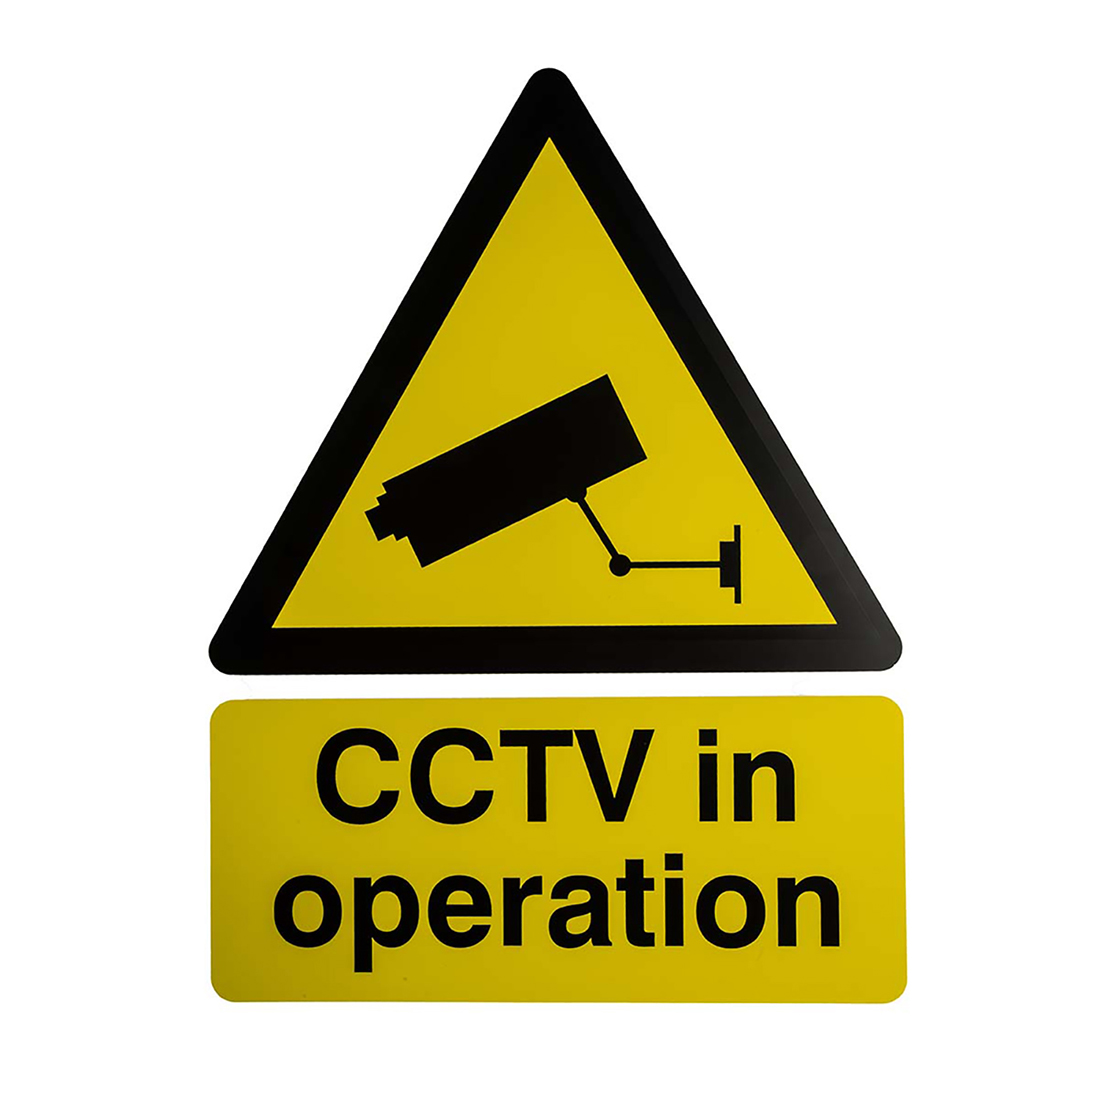 RS PRO White PP CCTV Sign, CCTV in Operation, English, CCTV, 300 mm x 400mm